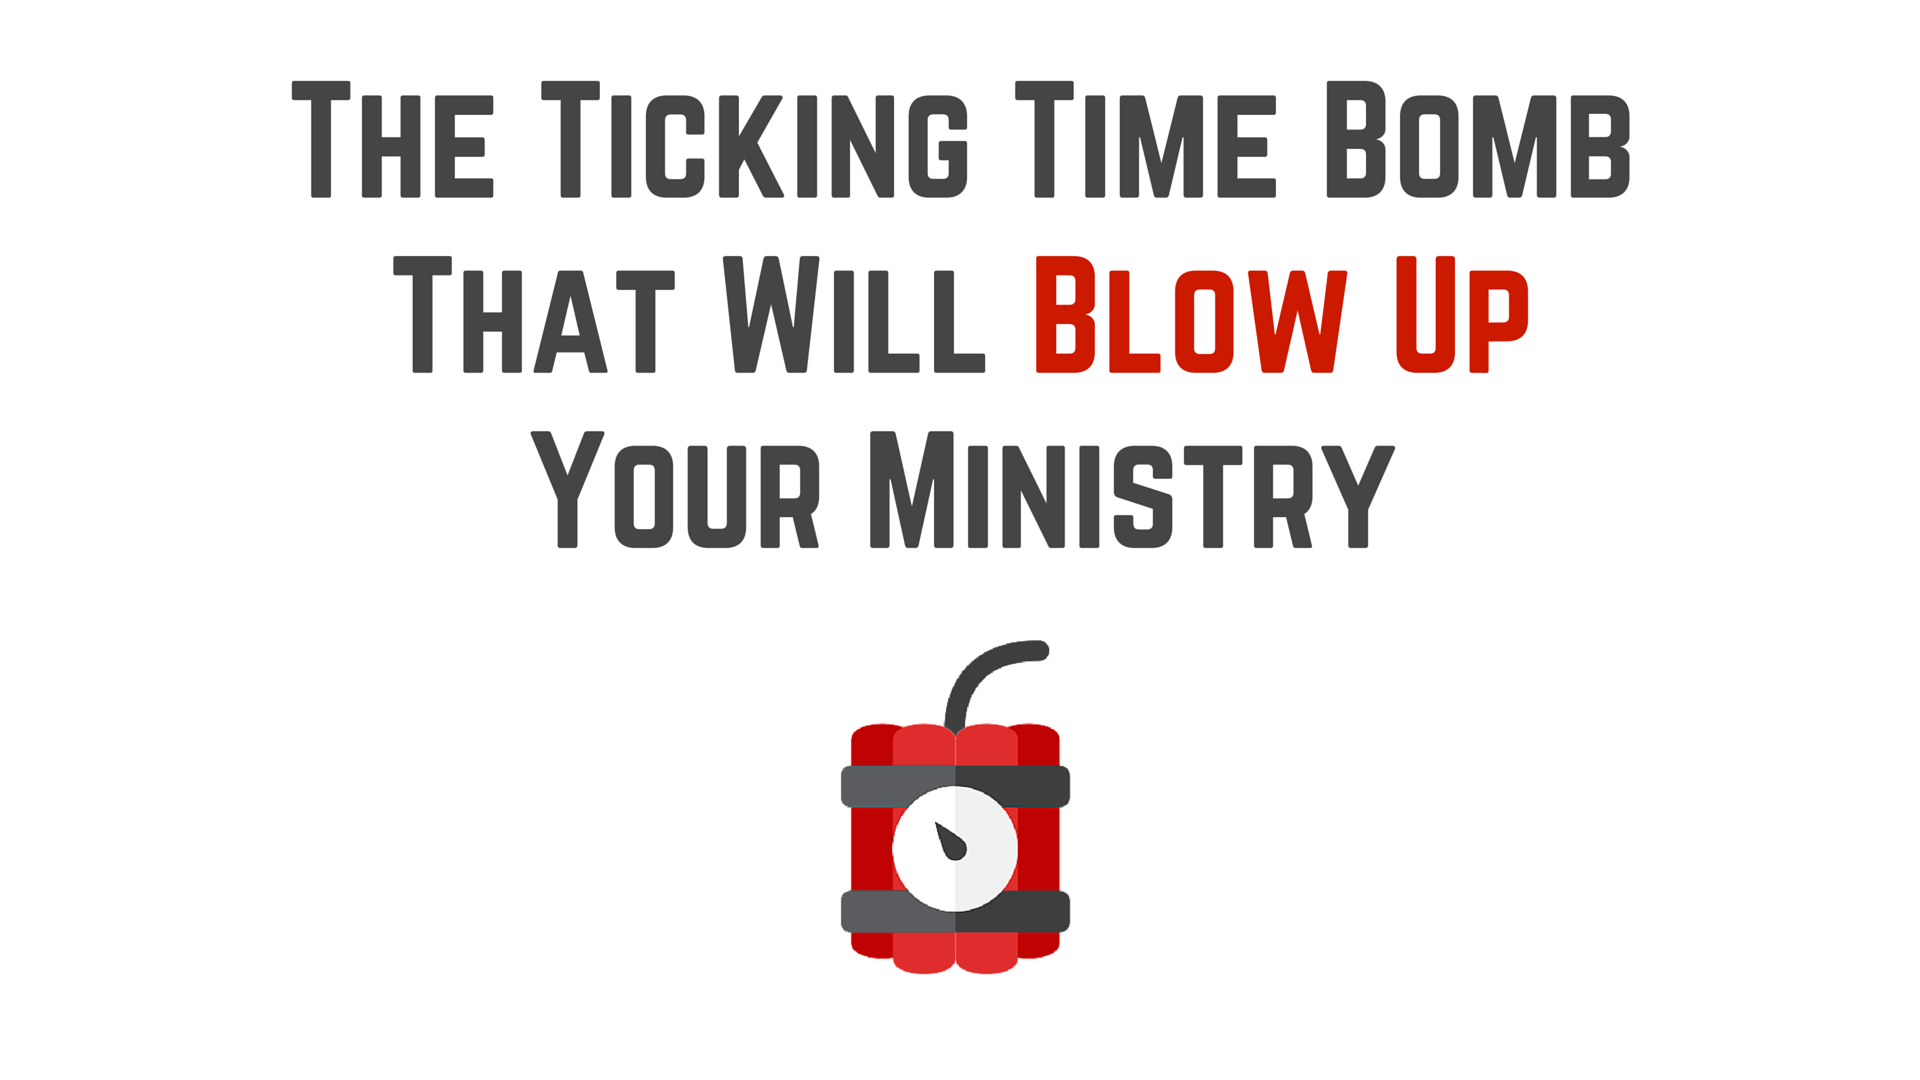 The ticking time bomb that will blow up your ministry